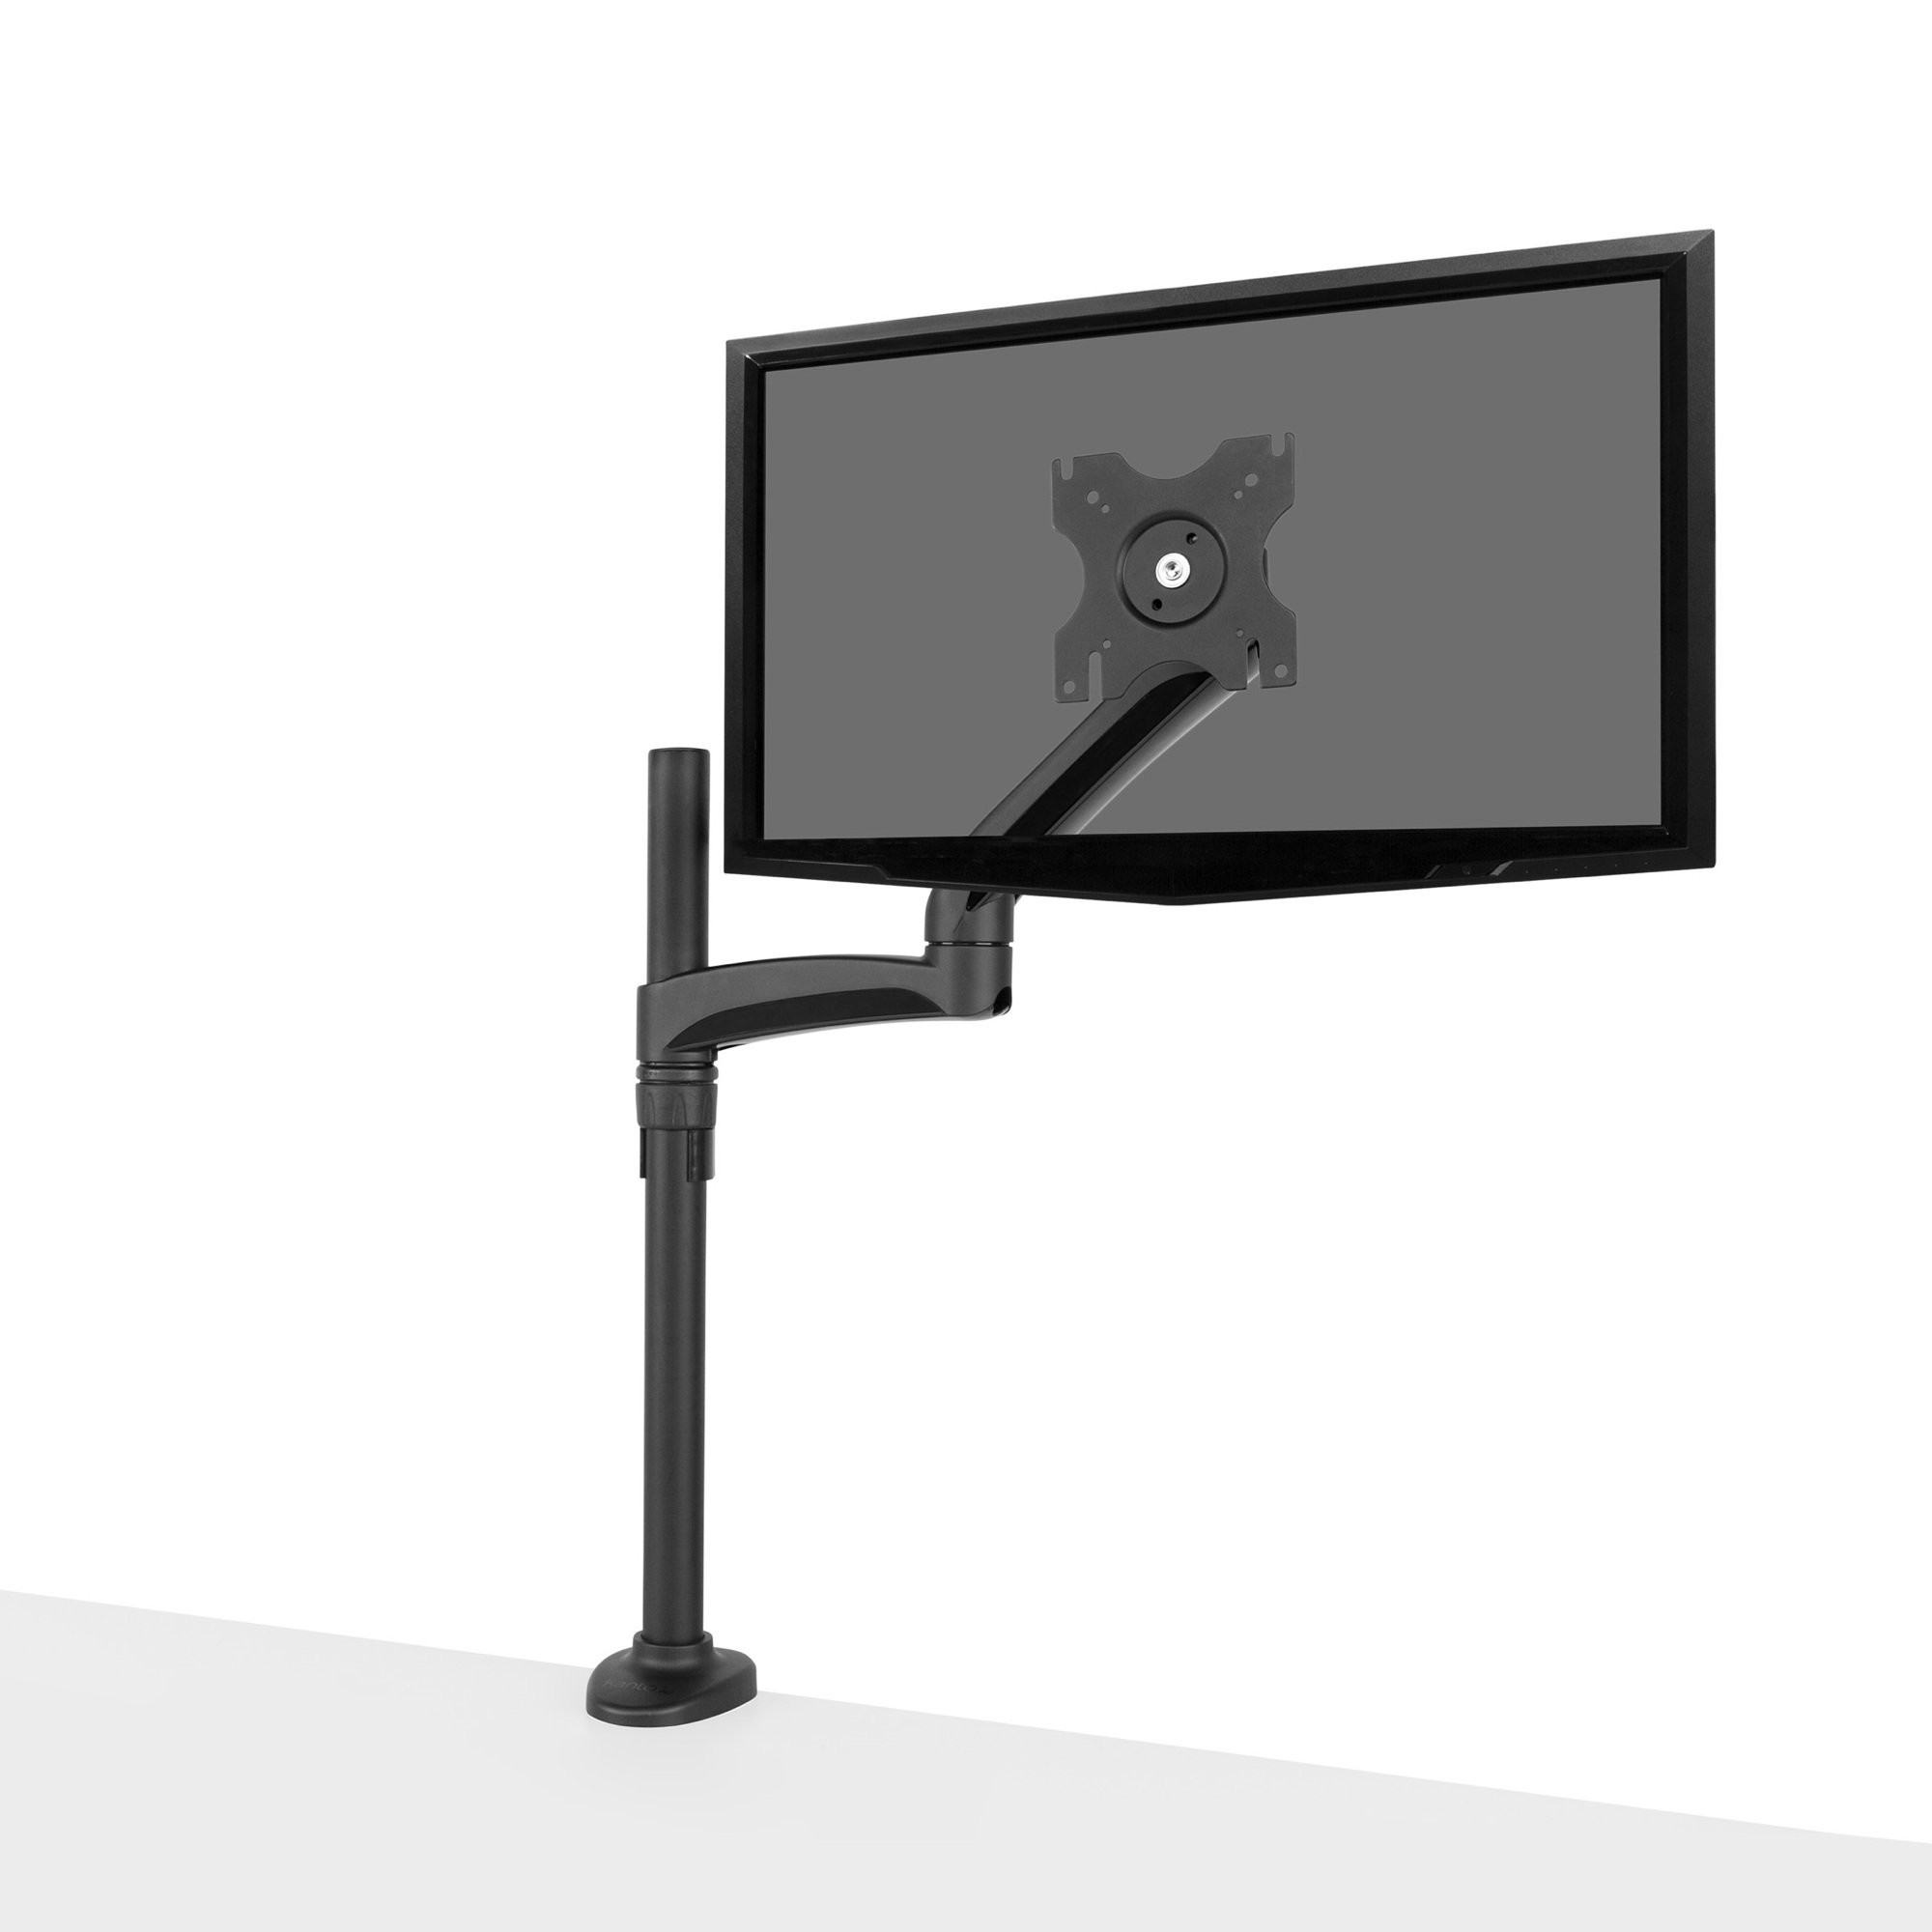 Kanto DM1000 Desktop Mount for 13-inch to 27-inch Displays